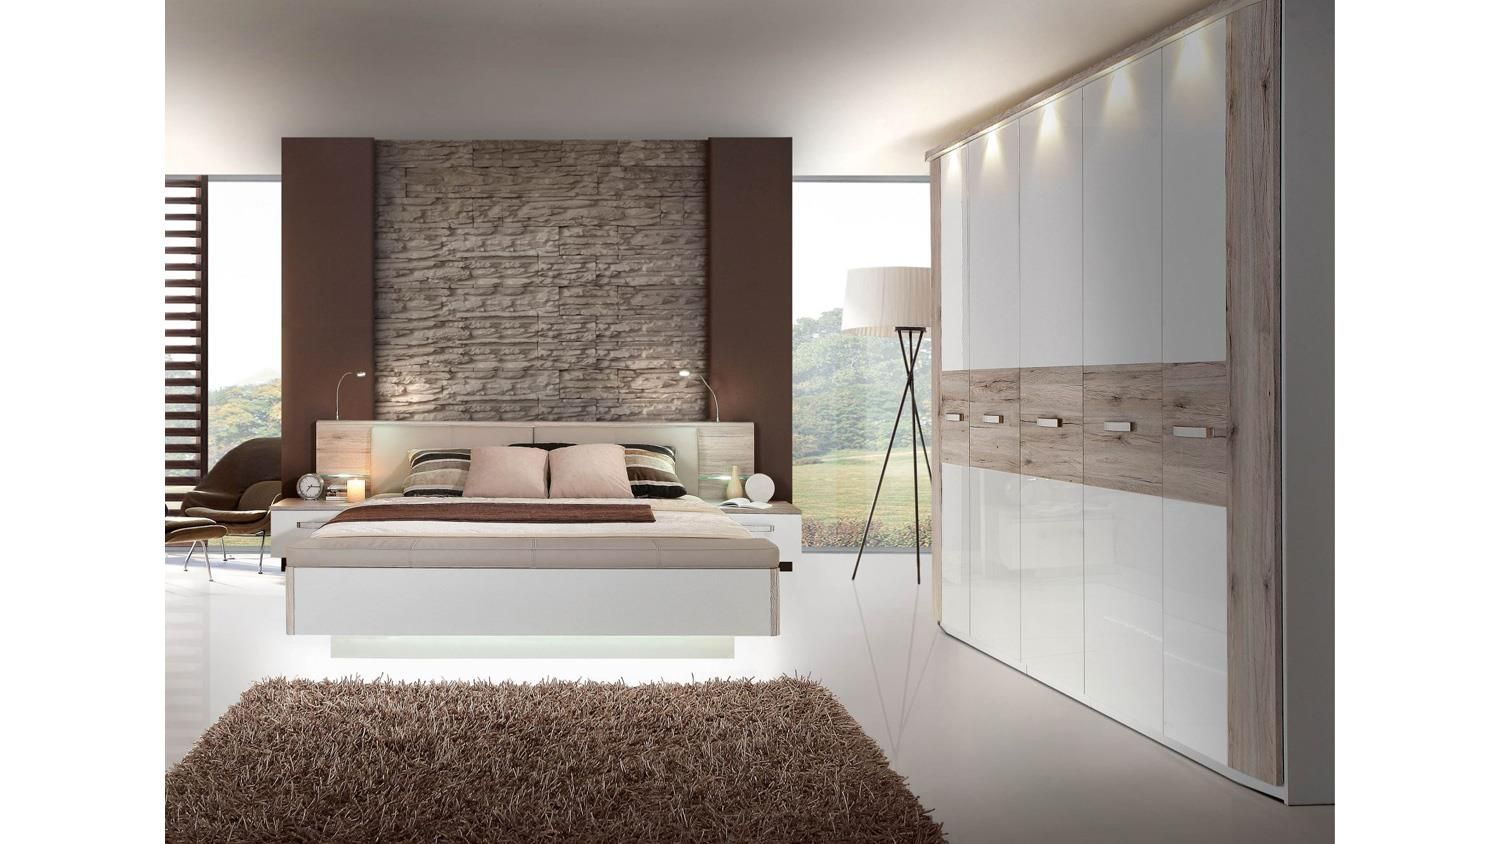 schlafzimmer 2 rondino komplettset in sandeiche wei hochglanz mit led. Black Bedroom Furniture Sets. Home Design Ideas